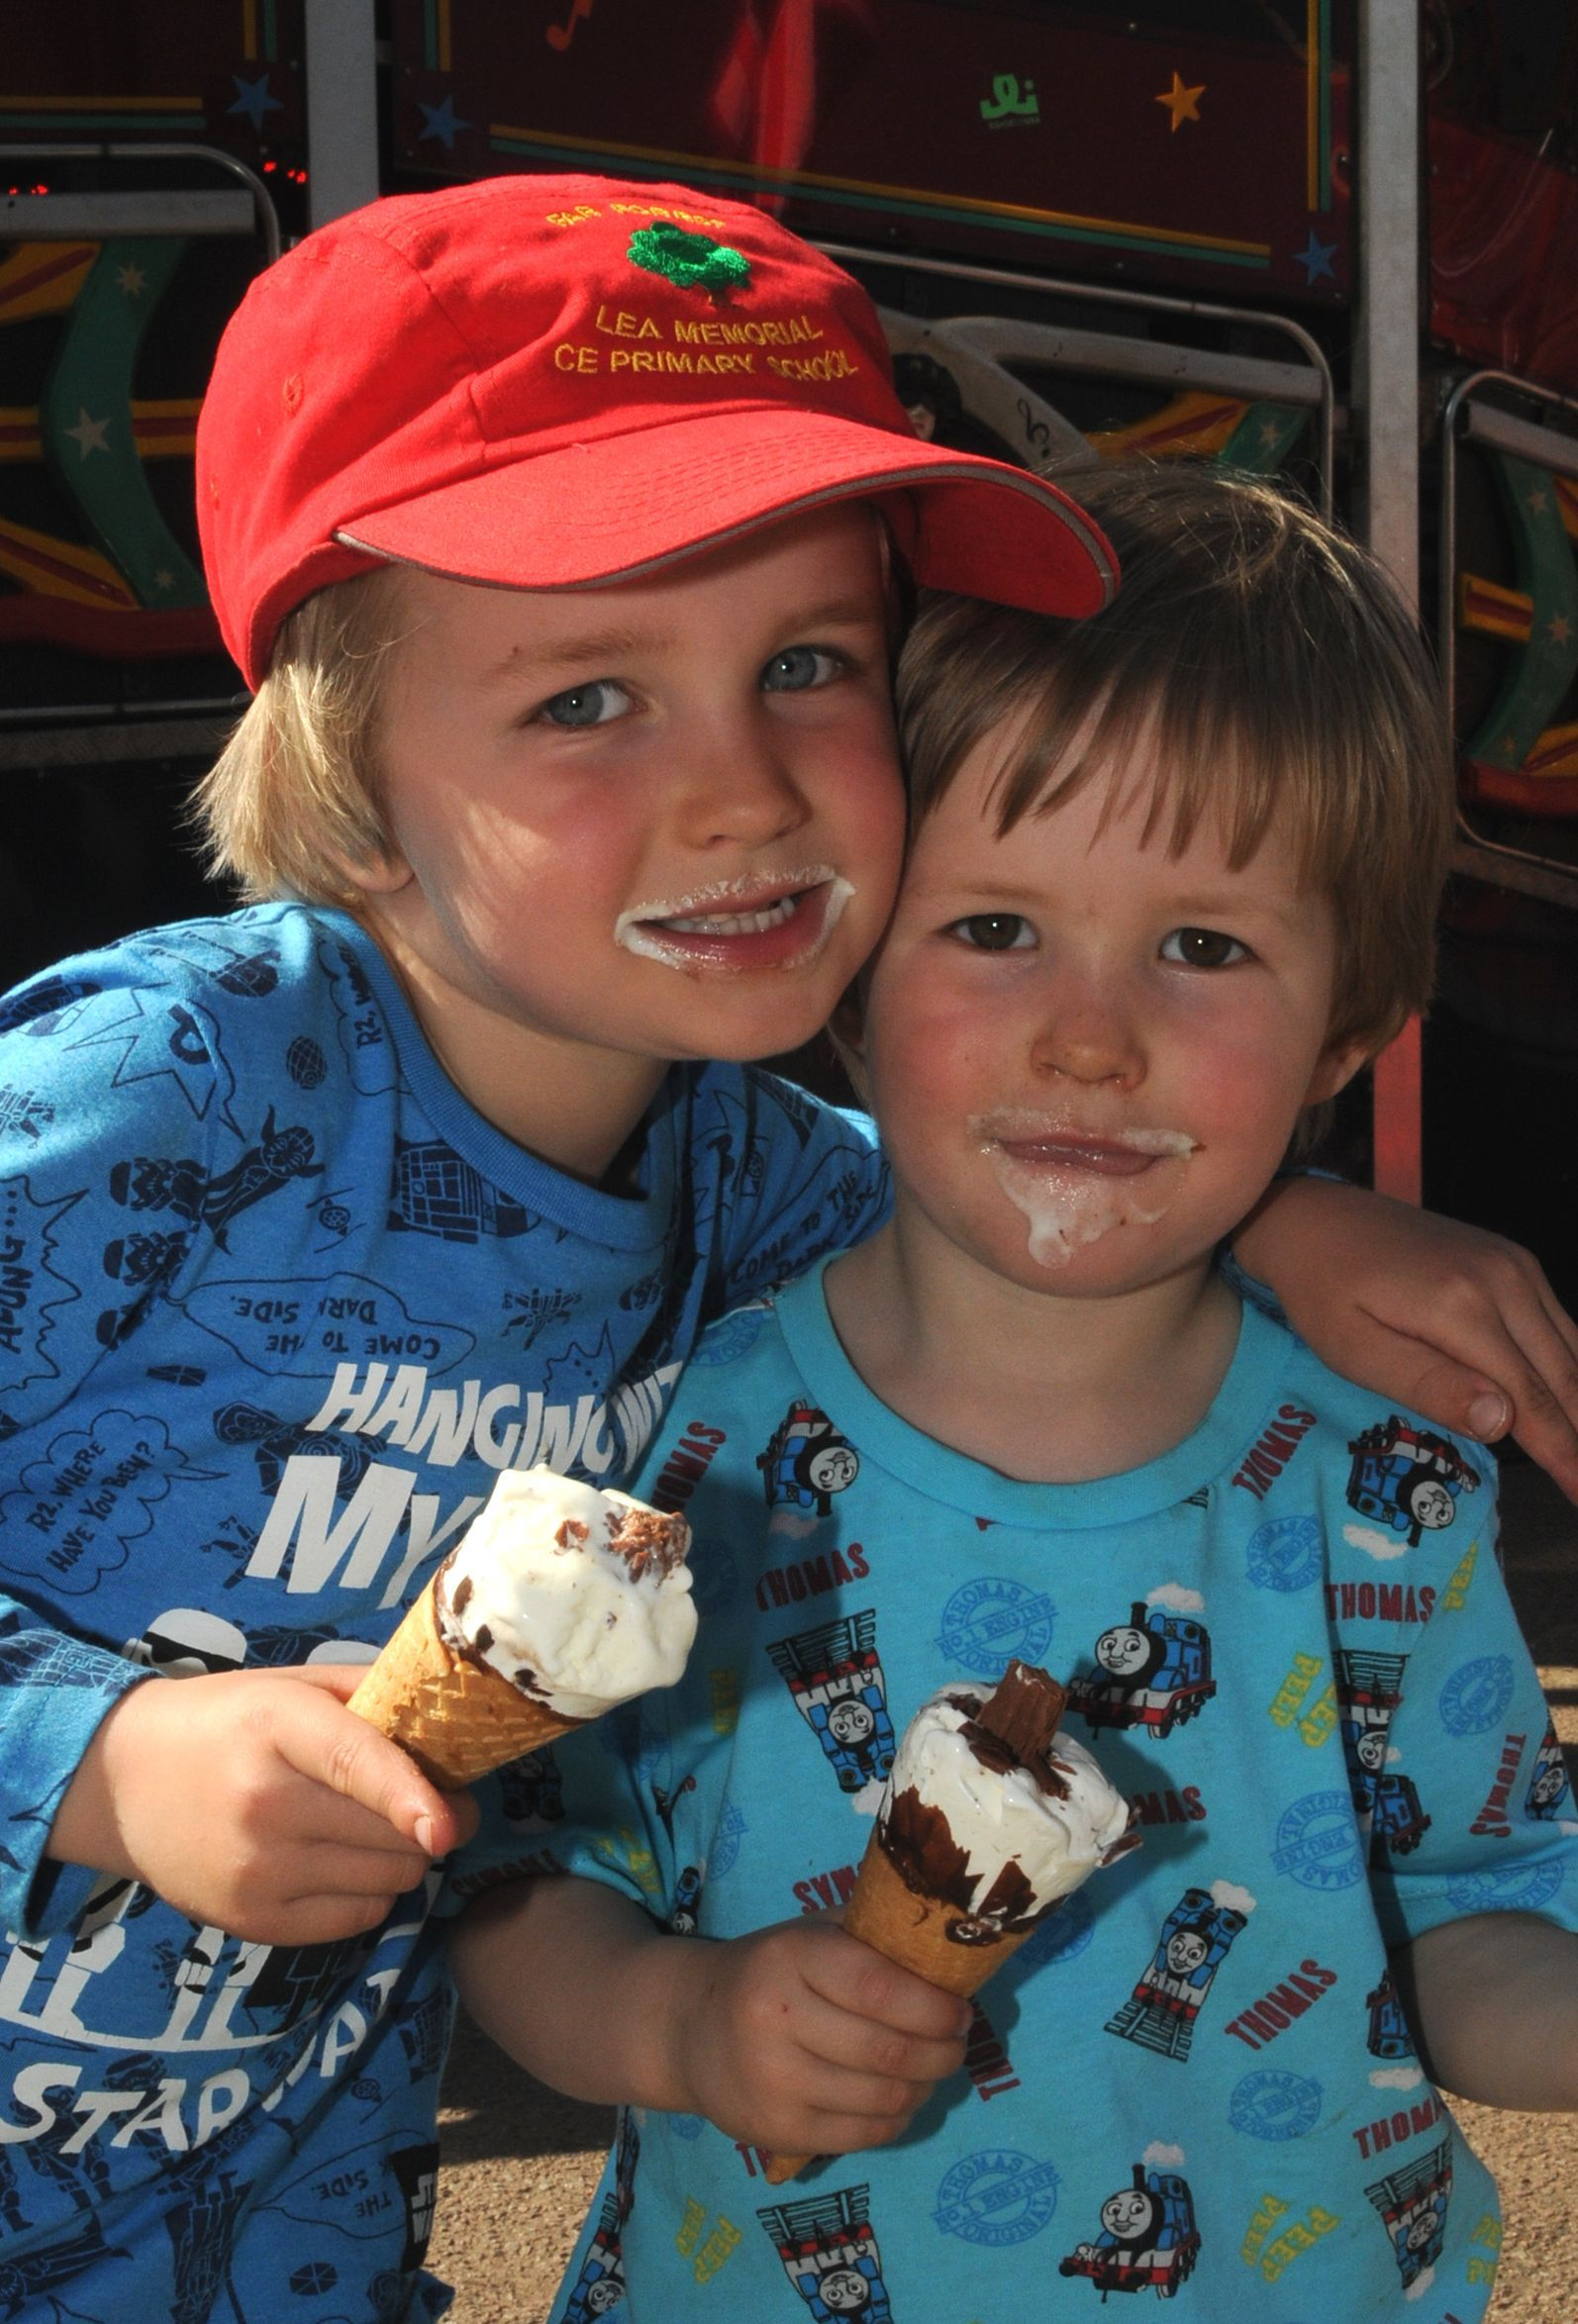 Five year old Freddie Norman gives his three year old brother Harvey a cuddle as they eat their ice cream at the fair.